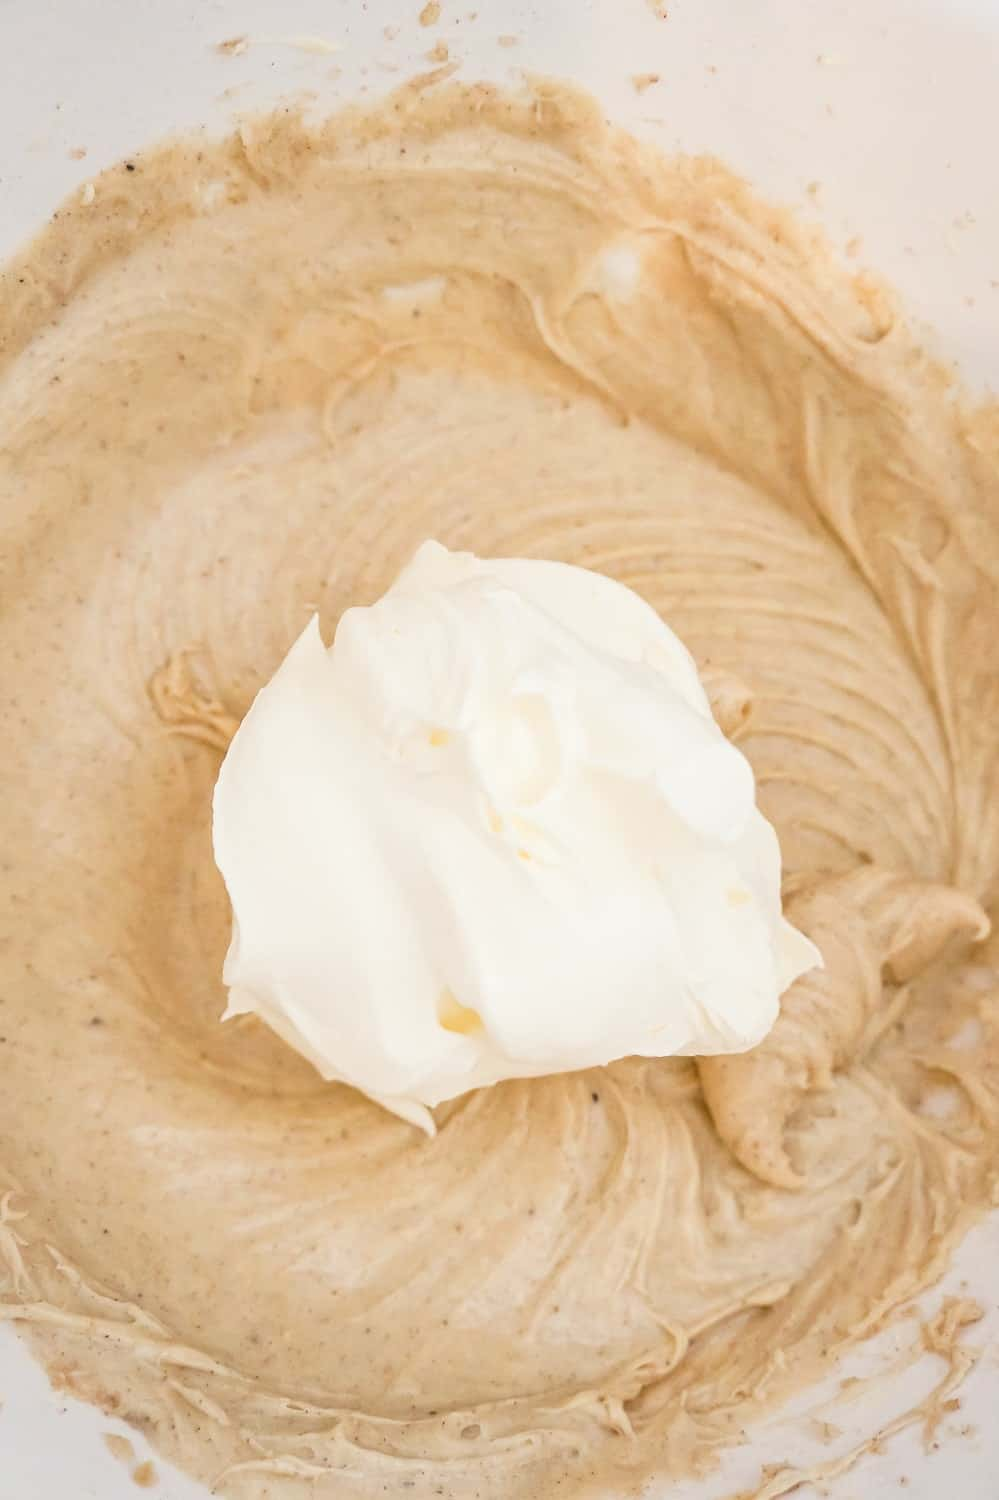 Cool Whip on top of pumpkin spice cheesecake filling in a mixing bowl